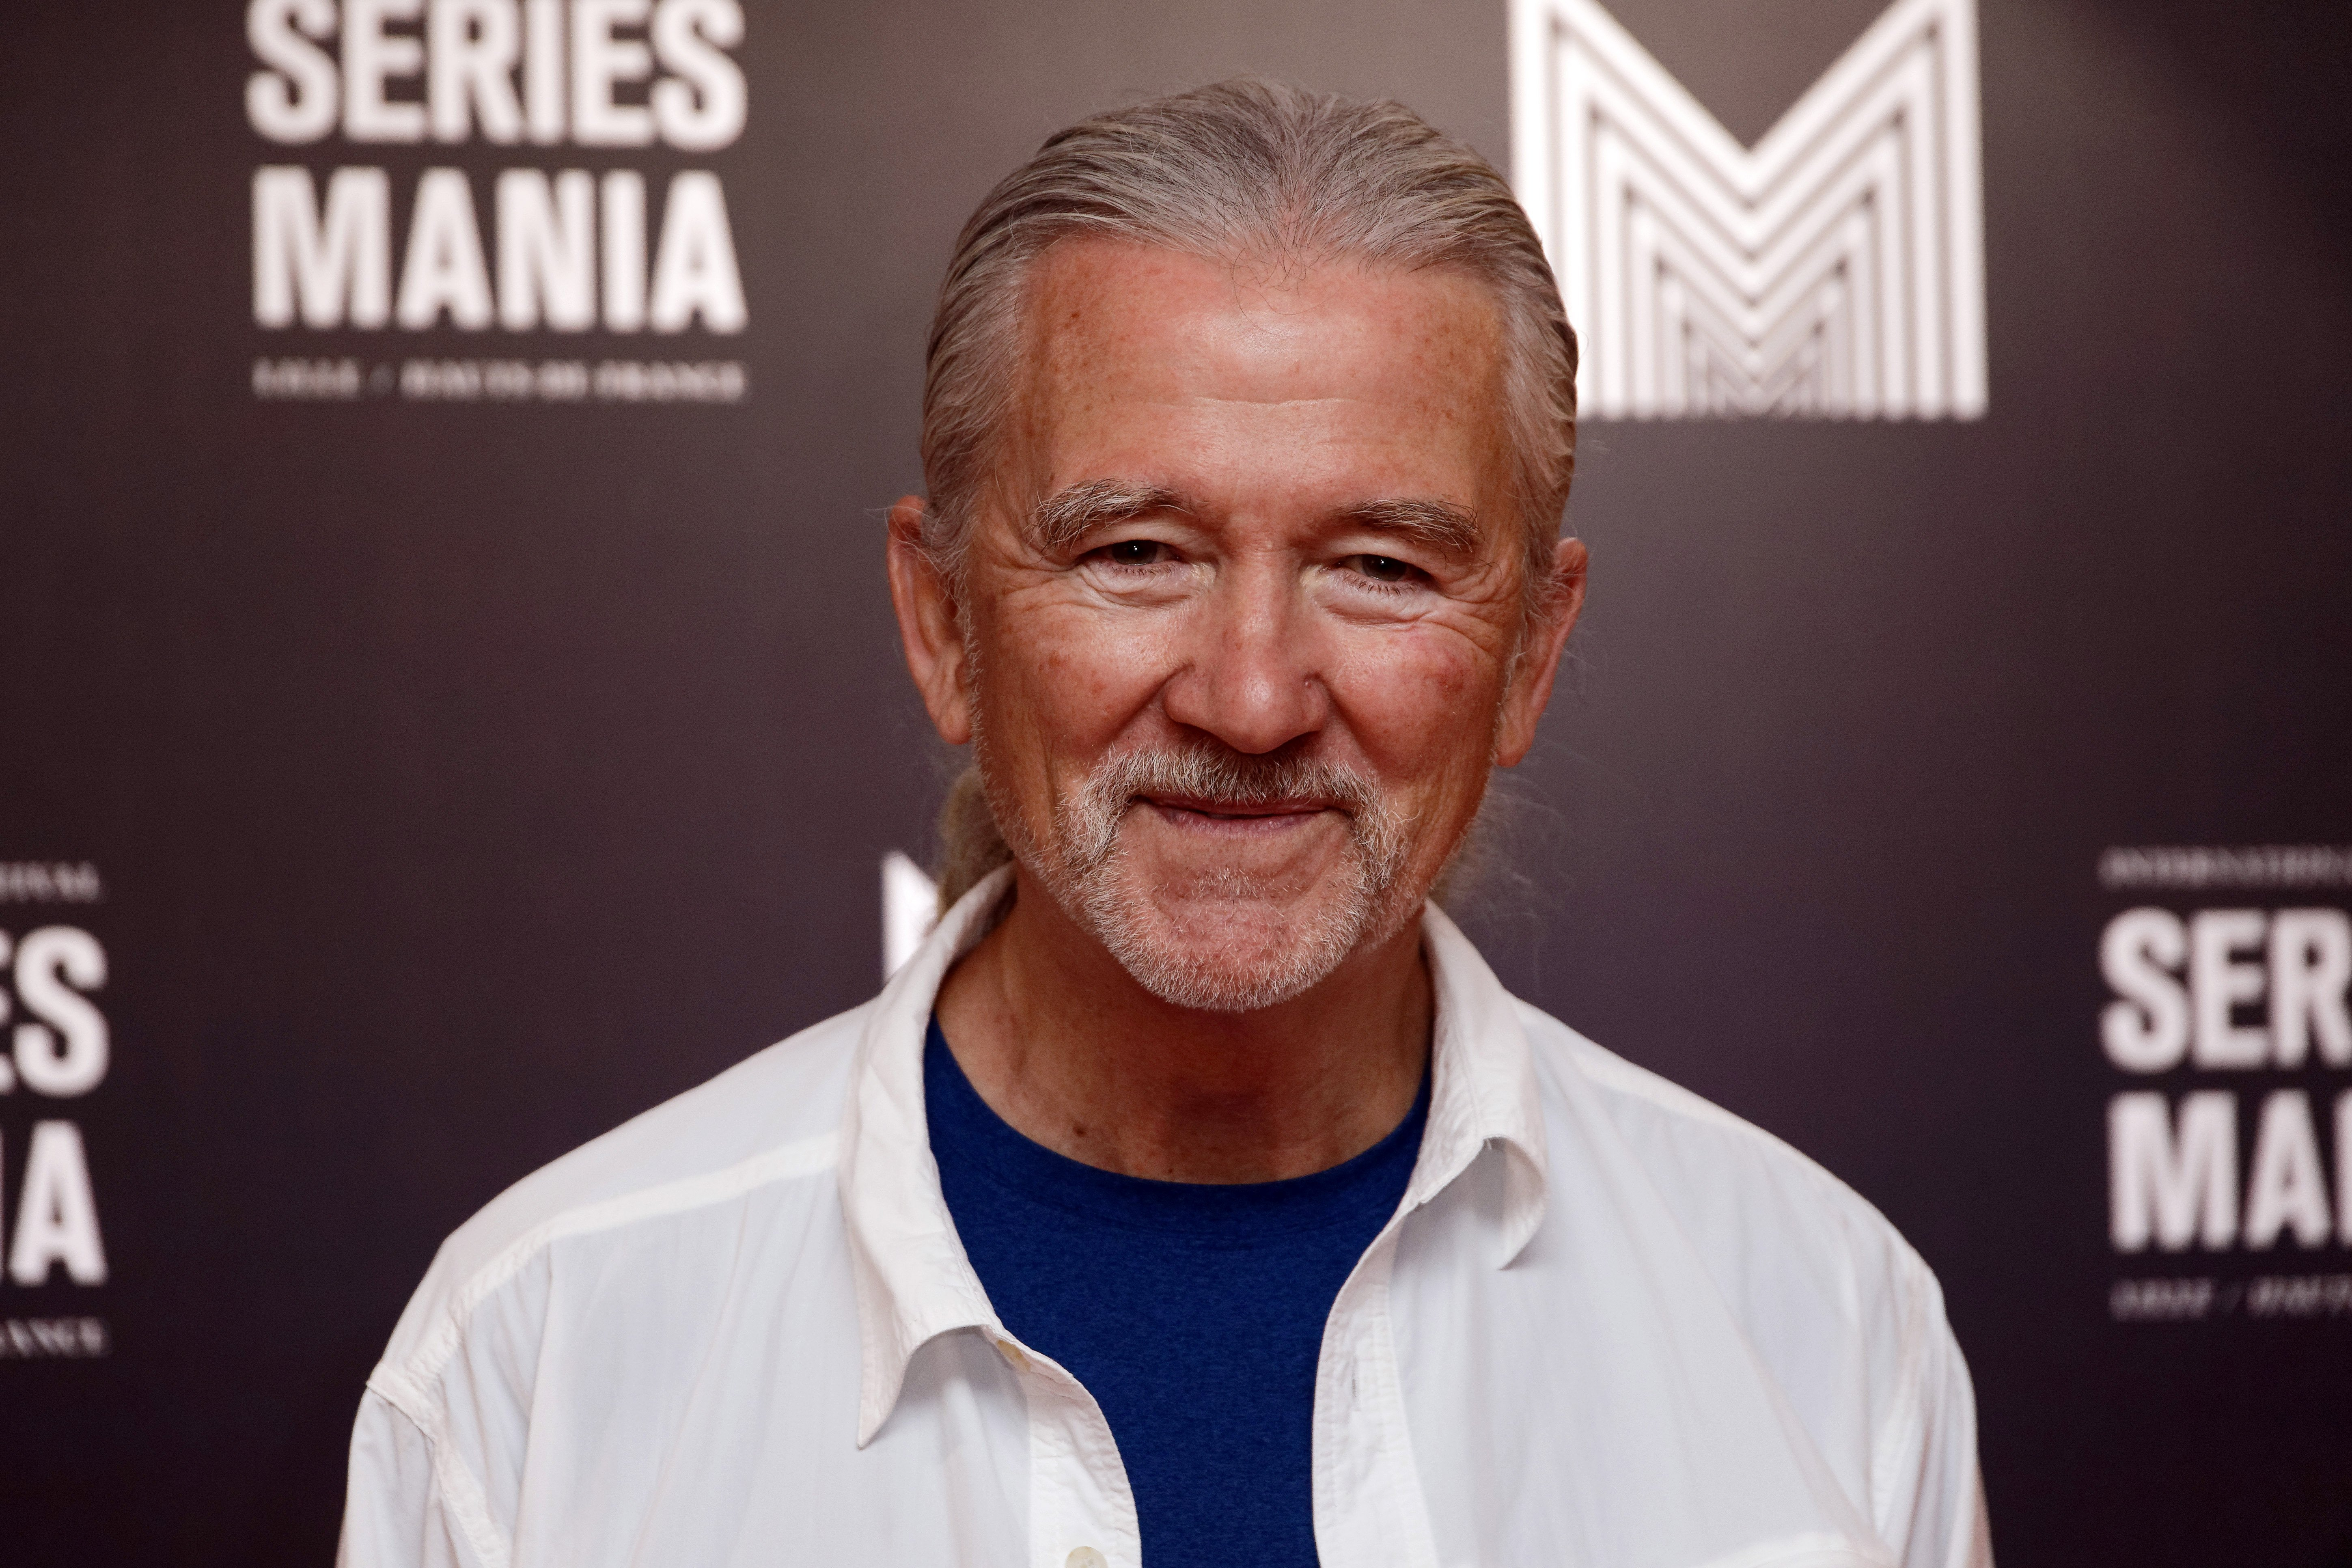 Patrick Duffy am 2. Mai 2018 in Lille, Frankreich | Quelle: Getty Images